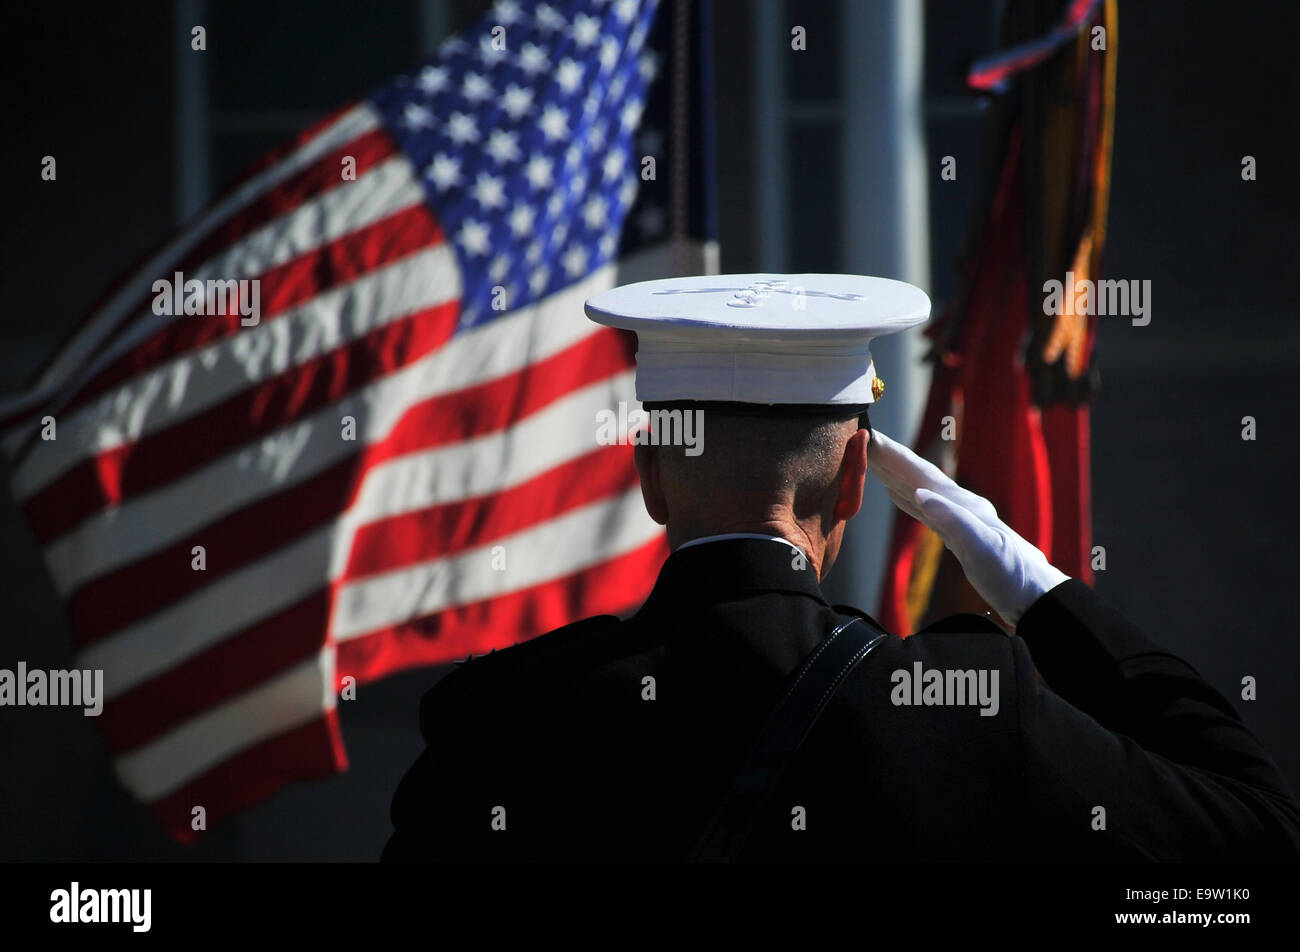 U.S. Marine Corps Gen. James F. Amos, the outgoing commandant of the Marine Corps, salutes the colors during the Stock Photo